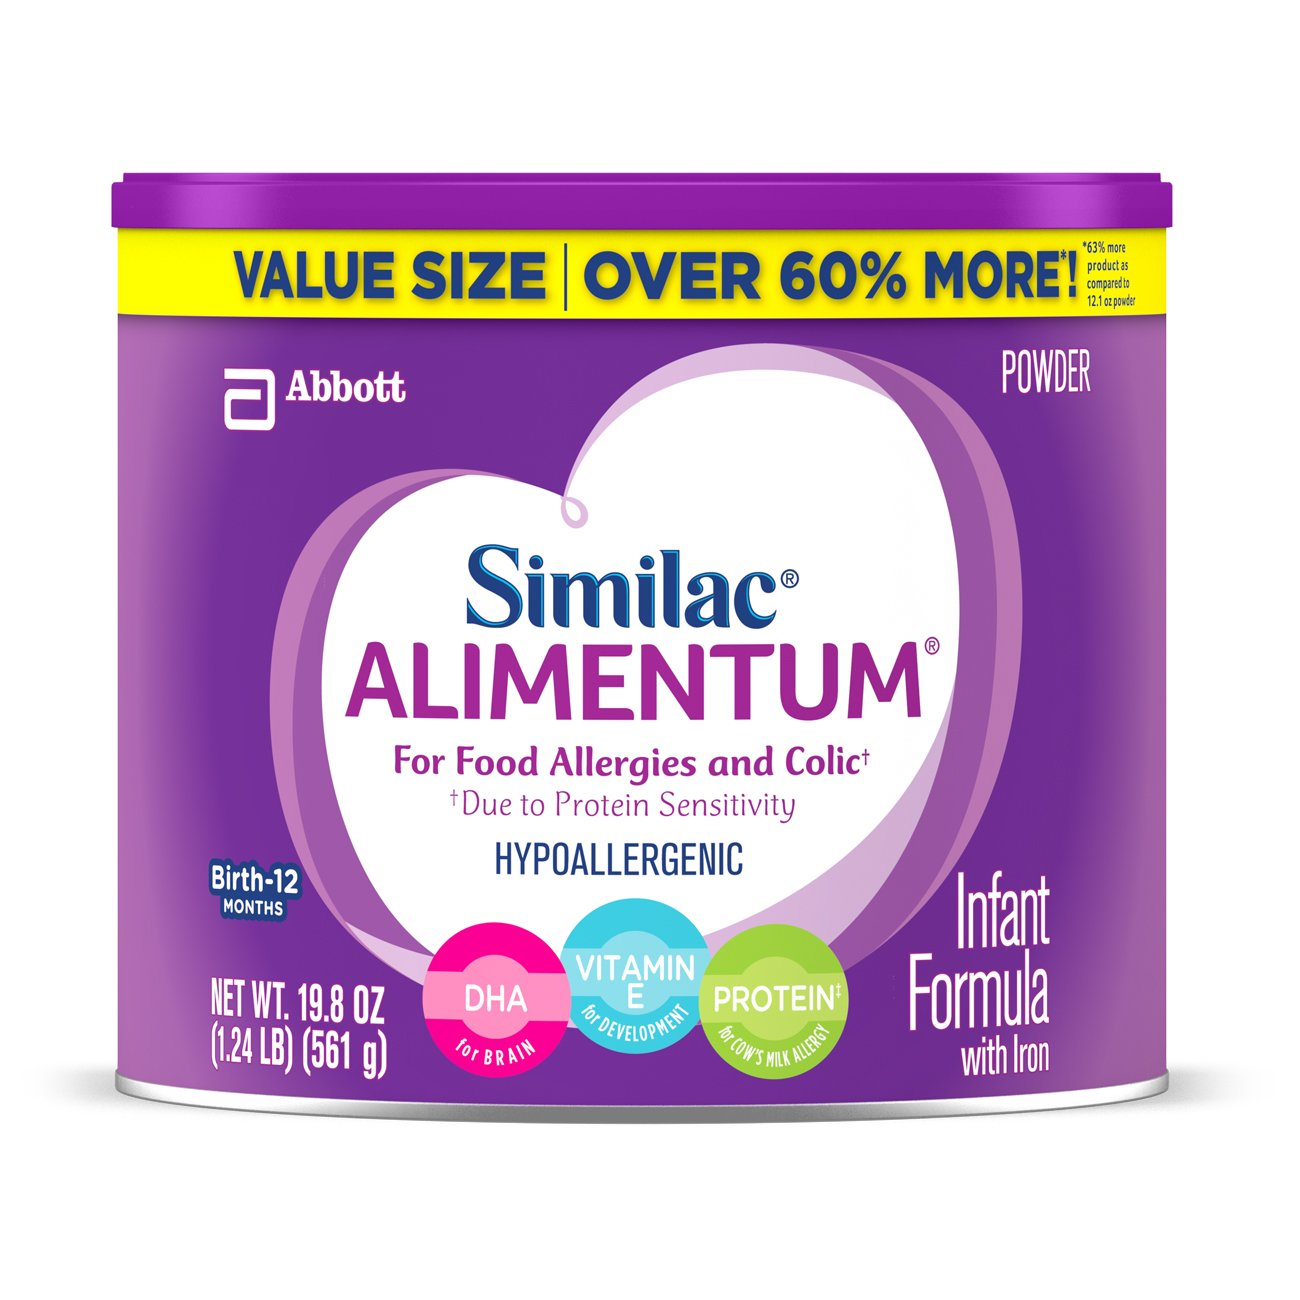 Similac Expert Care Alimentum Hypoallergenic Infant Formula with Iron, 19.8 Ounce by Similac